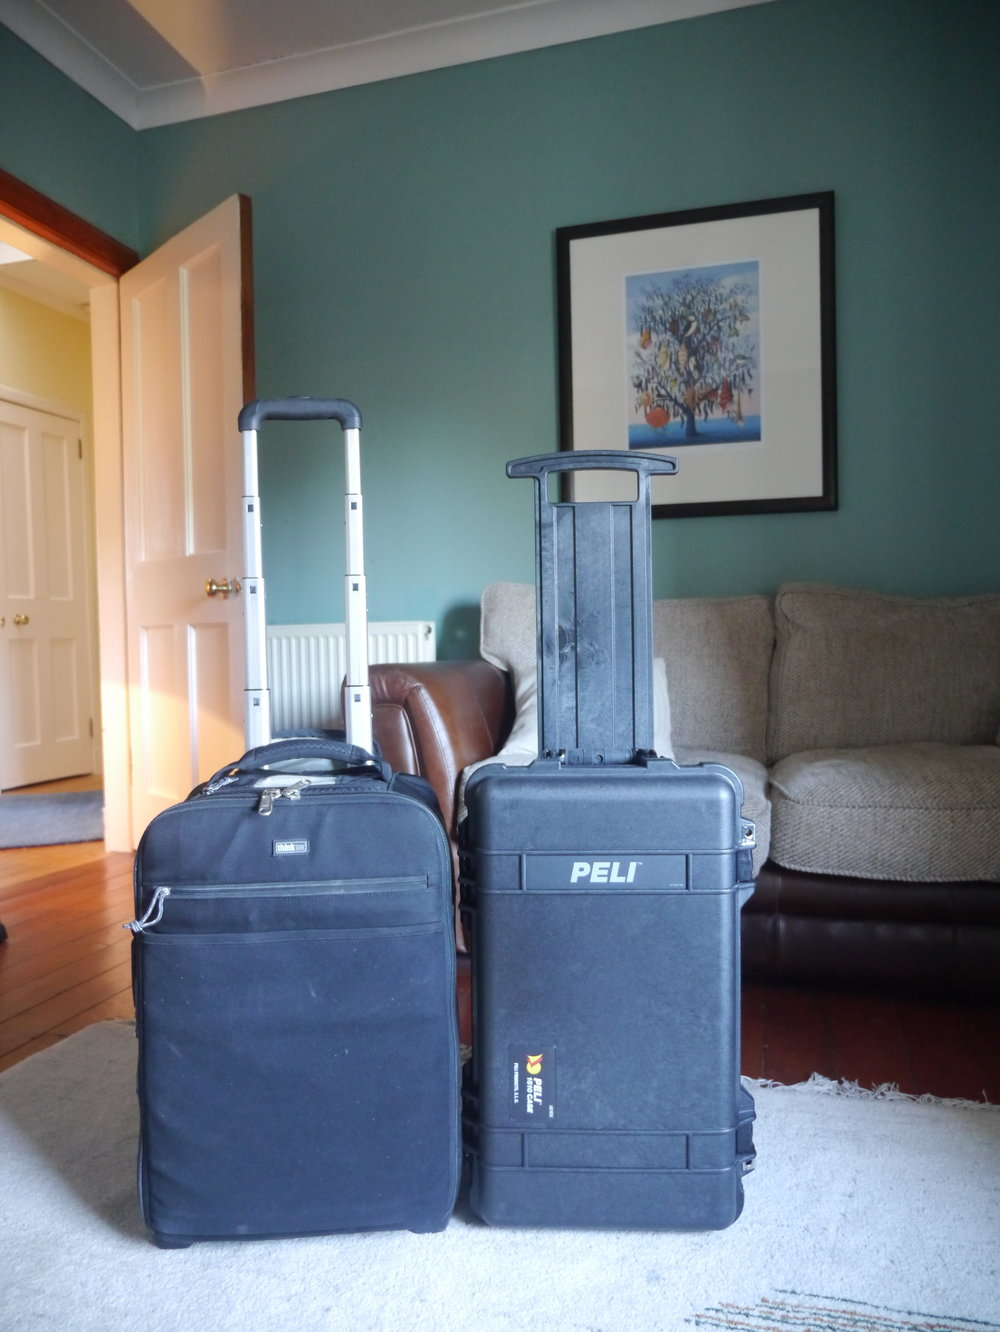 The Airport International Think Tank (Left) is wider than the Peli-Case. It allows me to carry more items but the Peli Case is more durable and still allows me to carry most of my items.